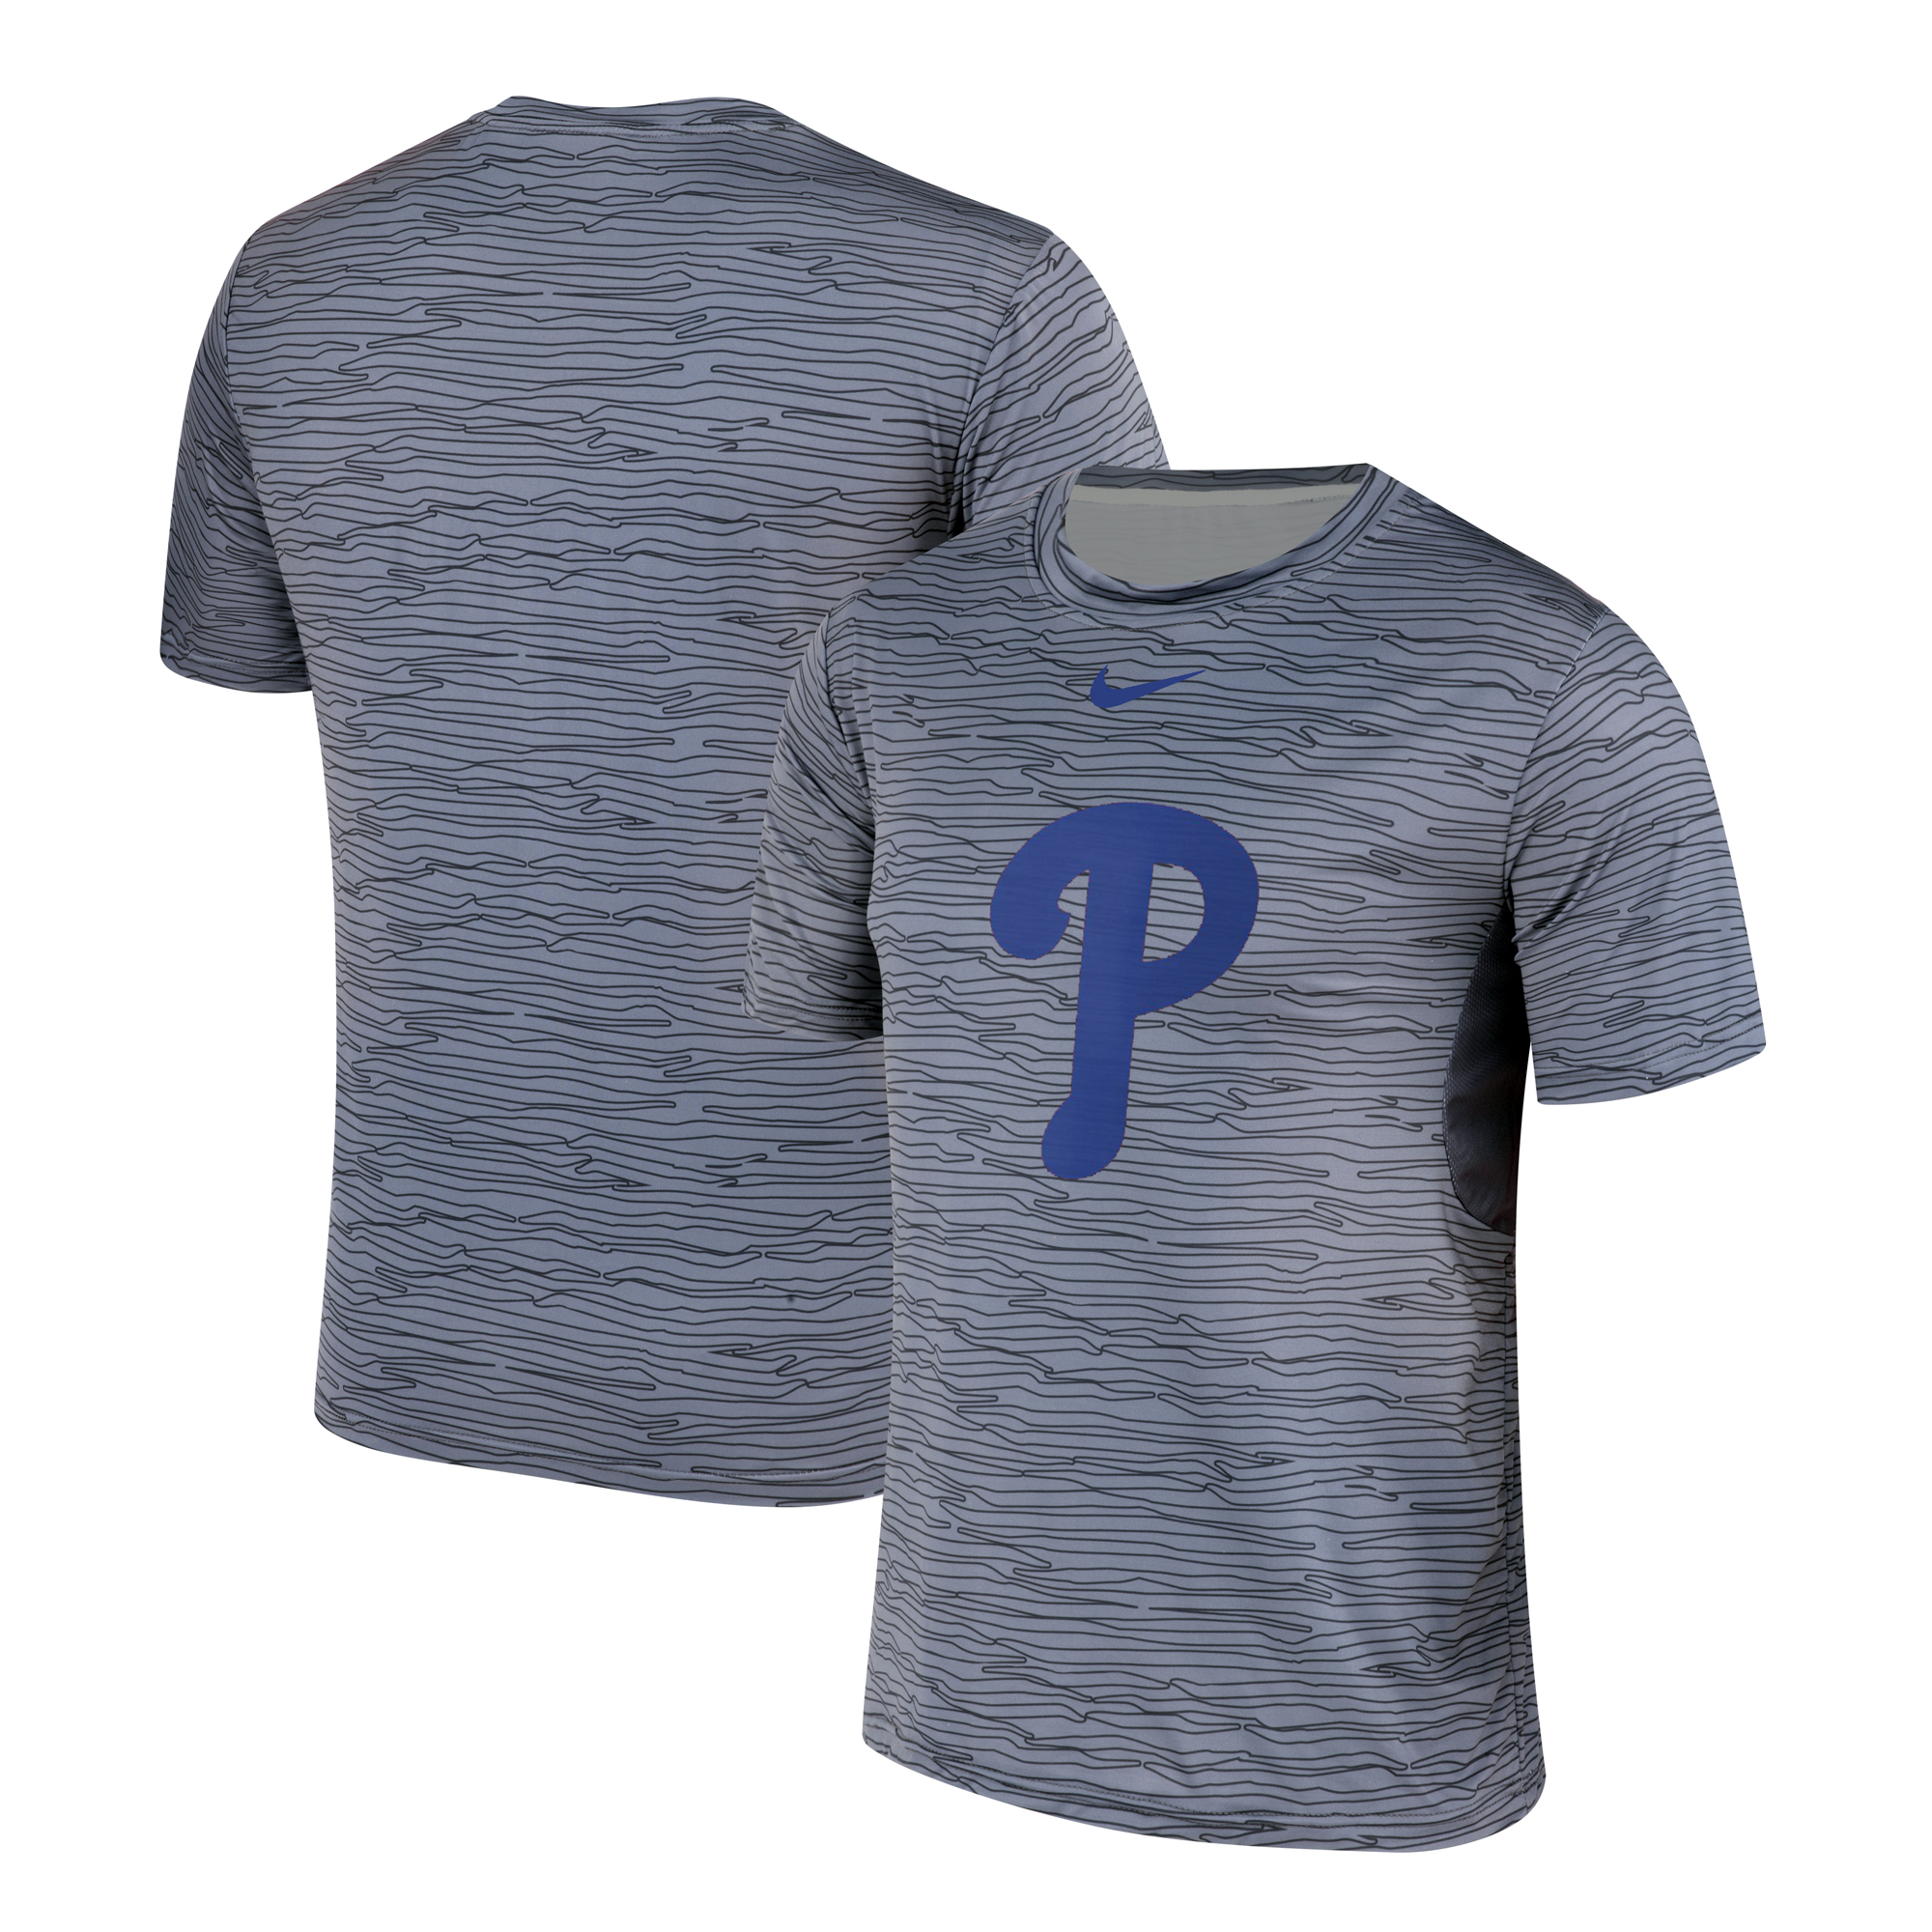 Nike Philadelphia Phillies Gray Black Striped Logo Performance T-Shirt